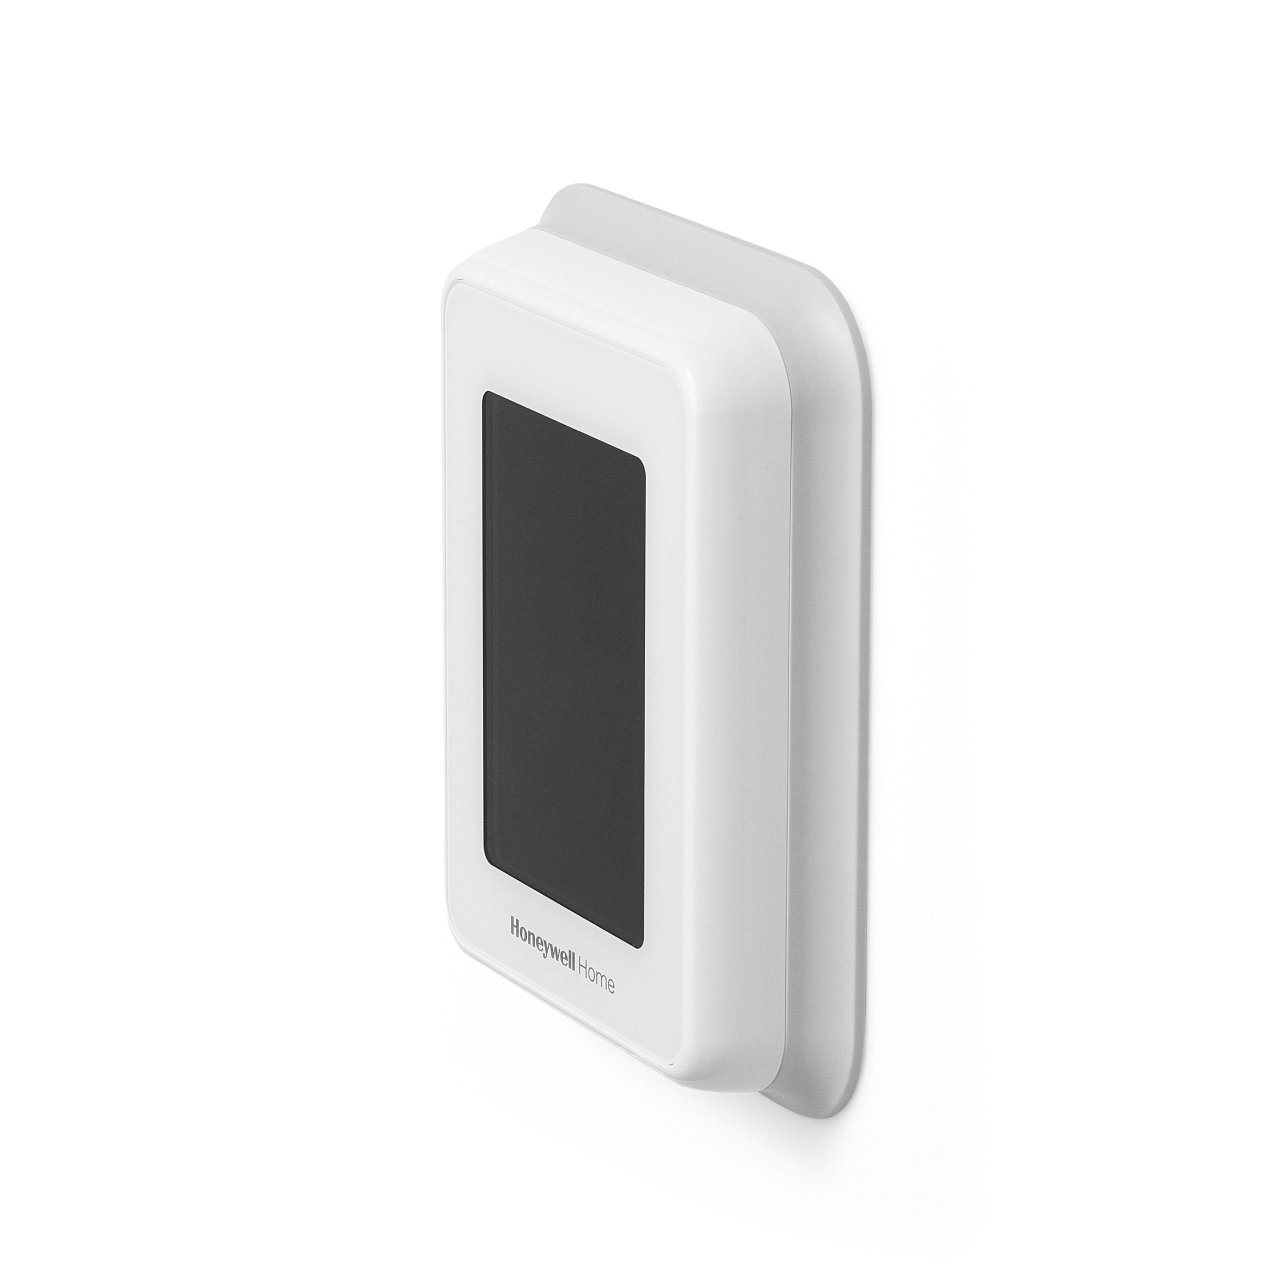 T9 Smart Home Thermostat Now